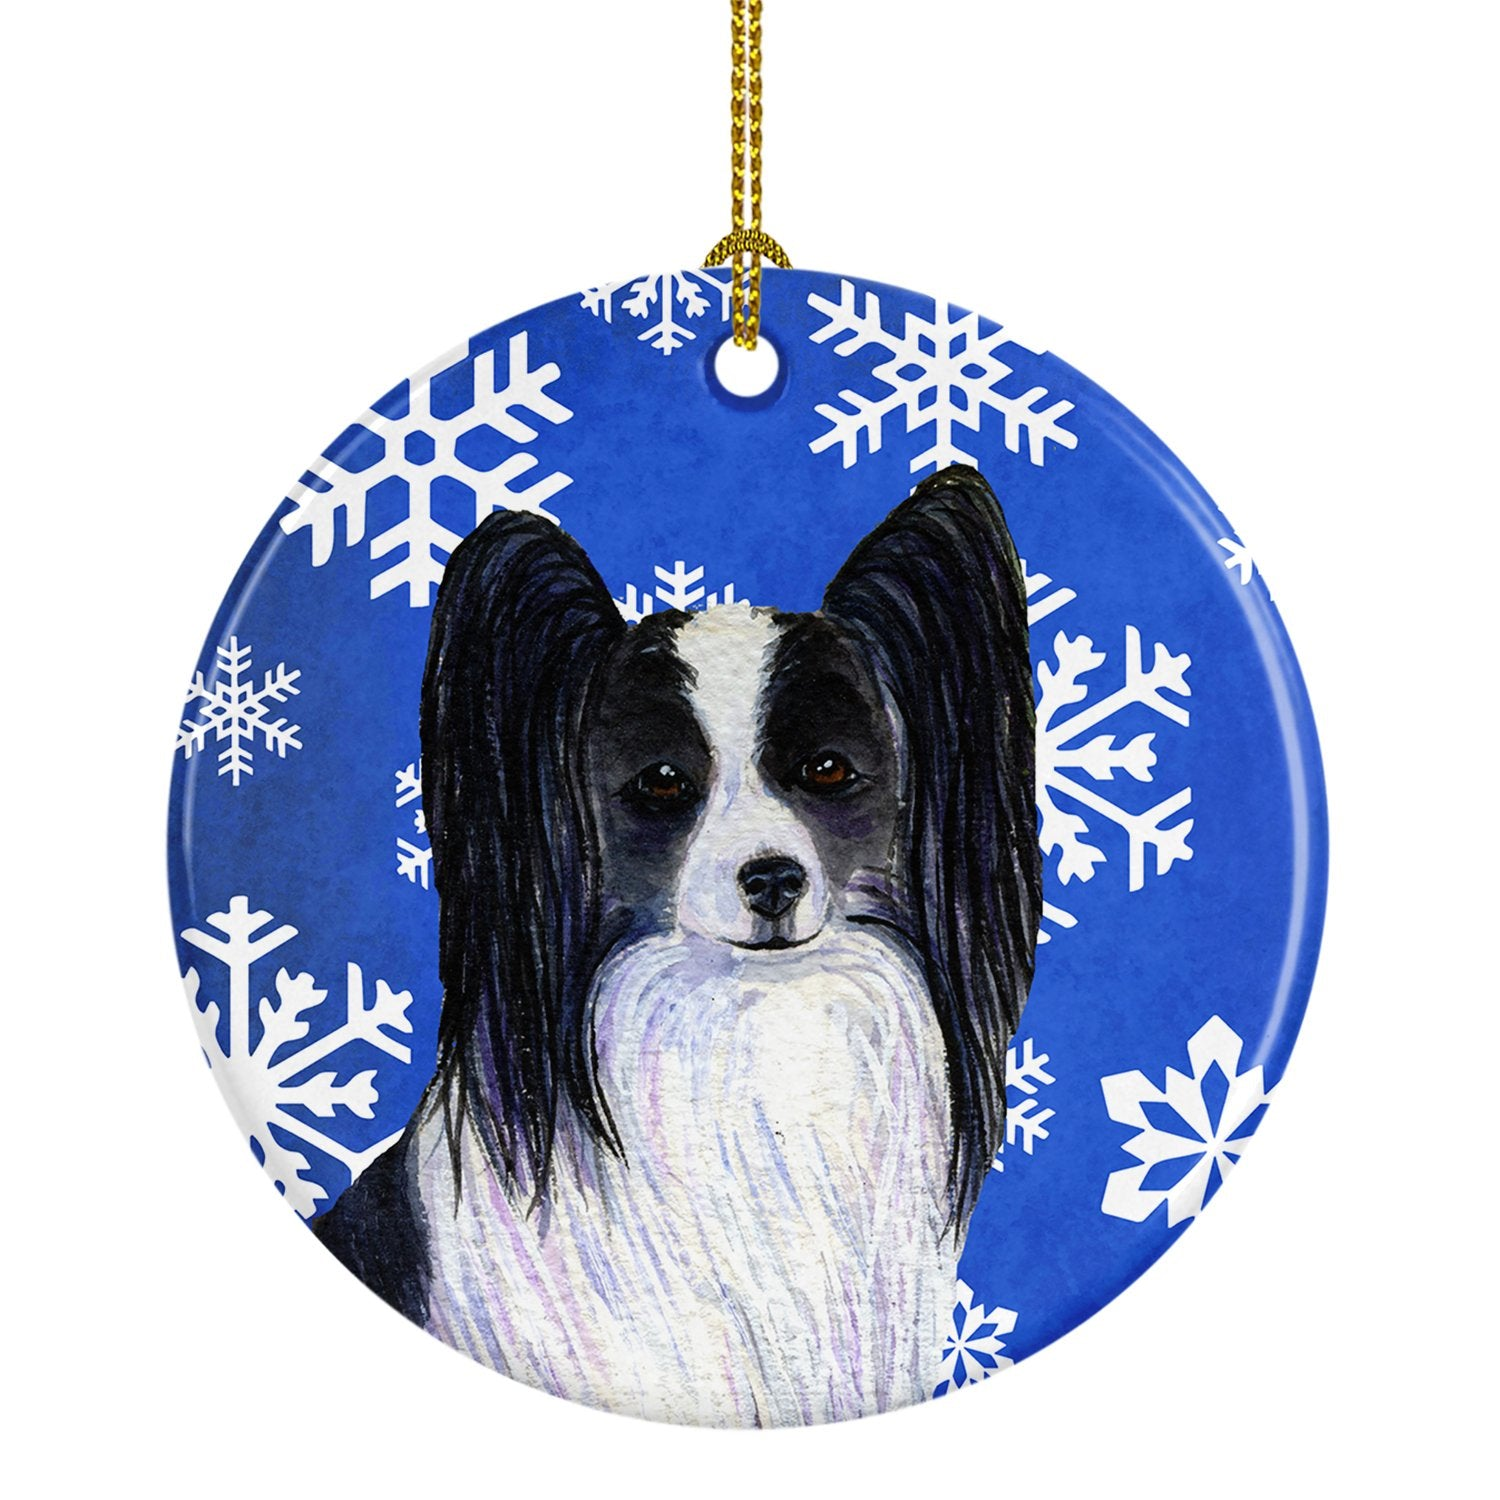 Papillon Winter Snowflakes Holiday Christmas Ceramic Ornament SS4643 by Caroline's Treasures